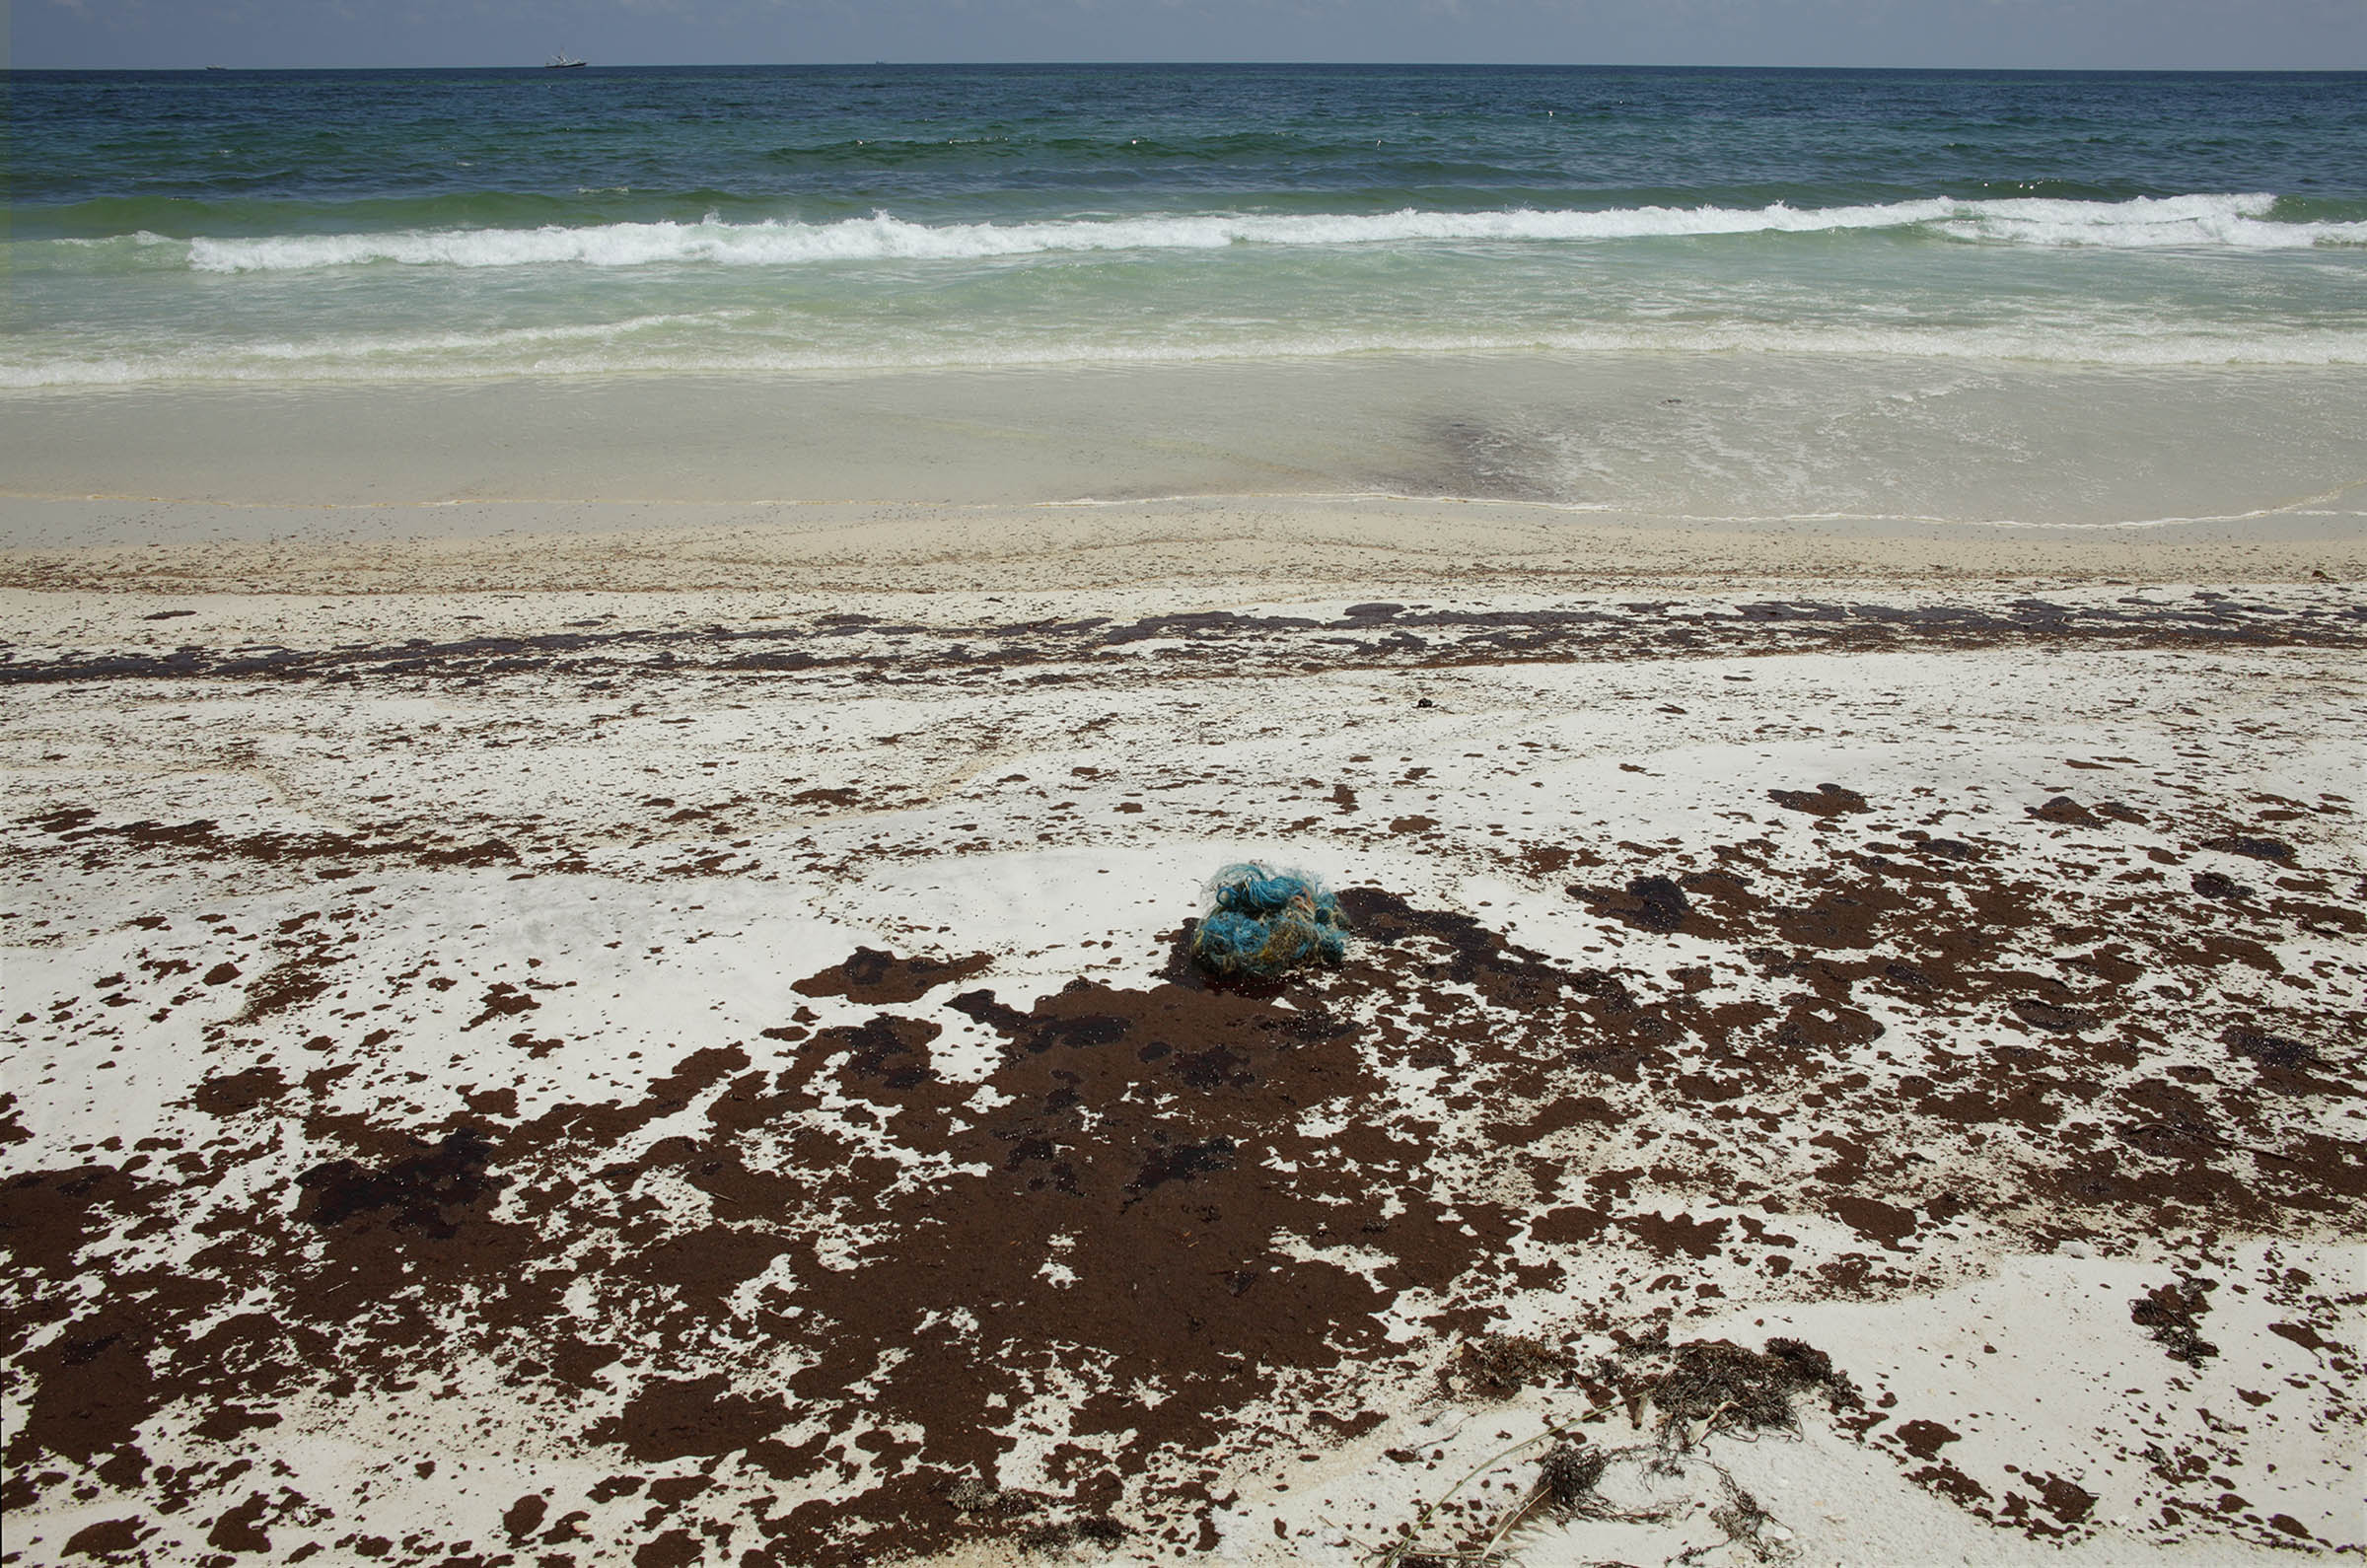 BP Oil and fishing net washed up on shoreline, National Sea Shore Park, Santa Rosa Island, Florida, 2010